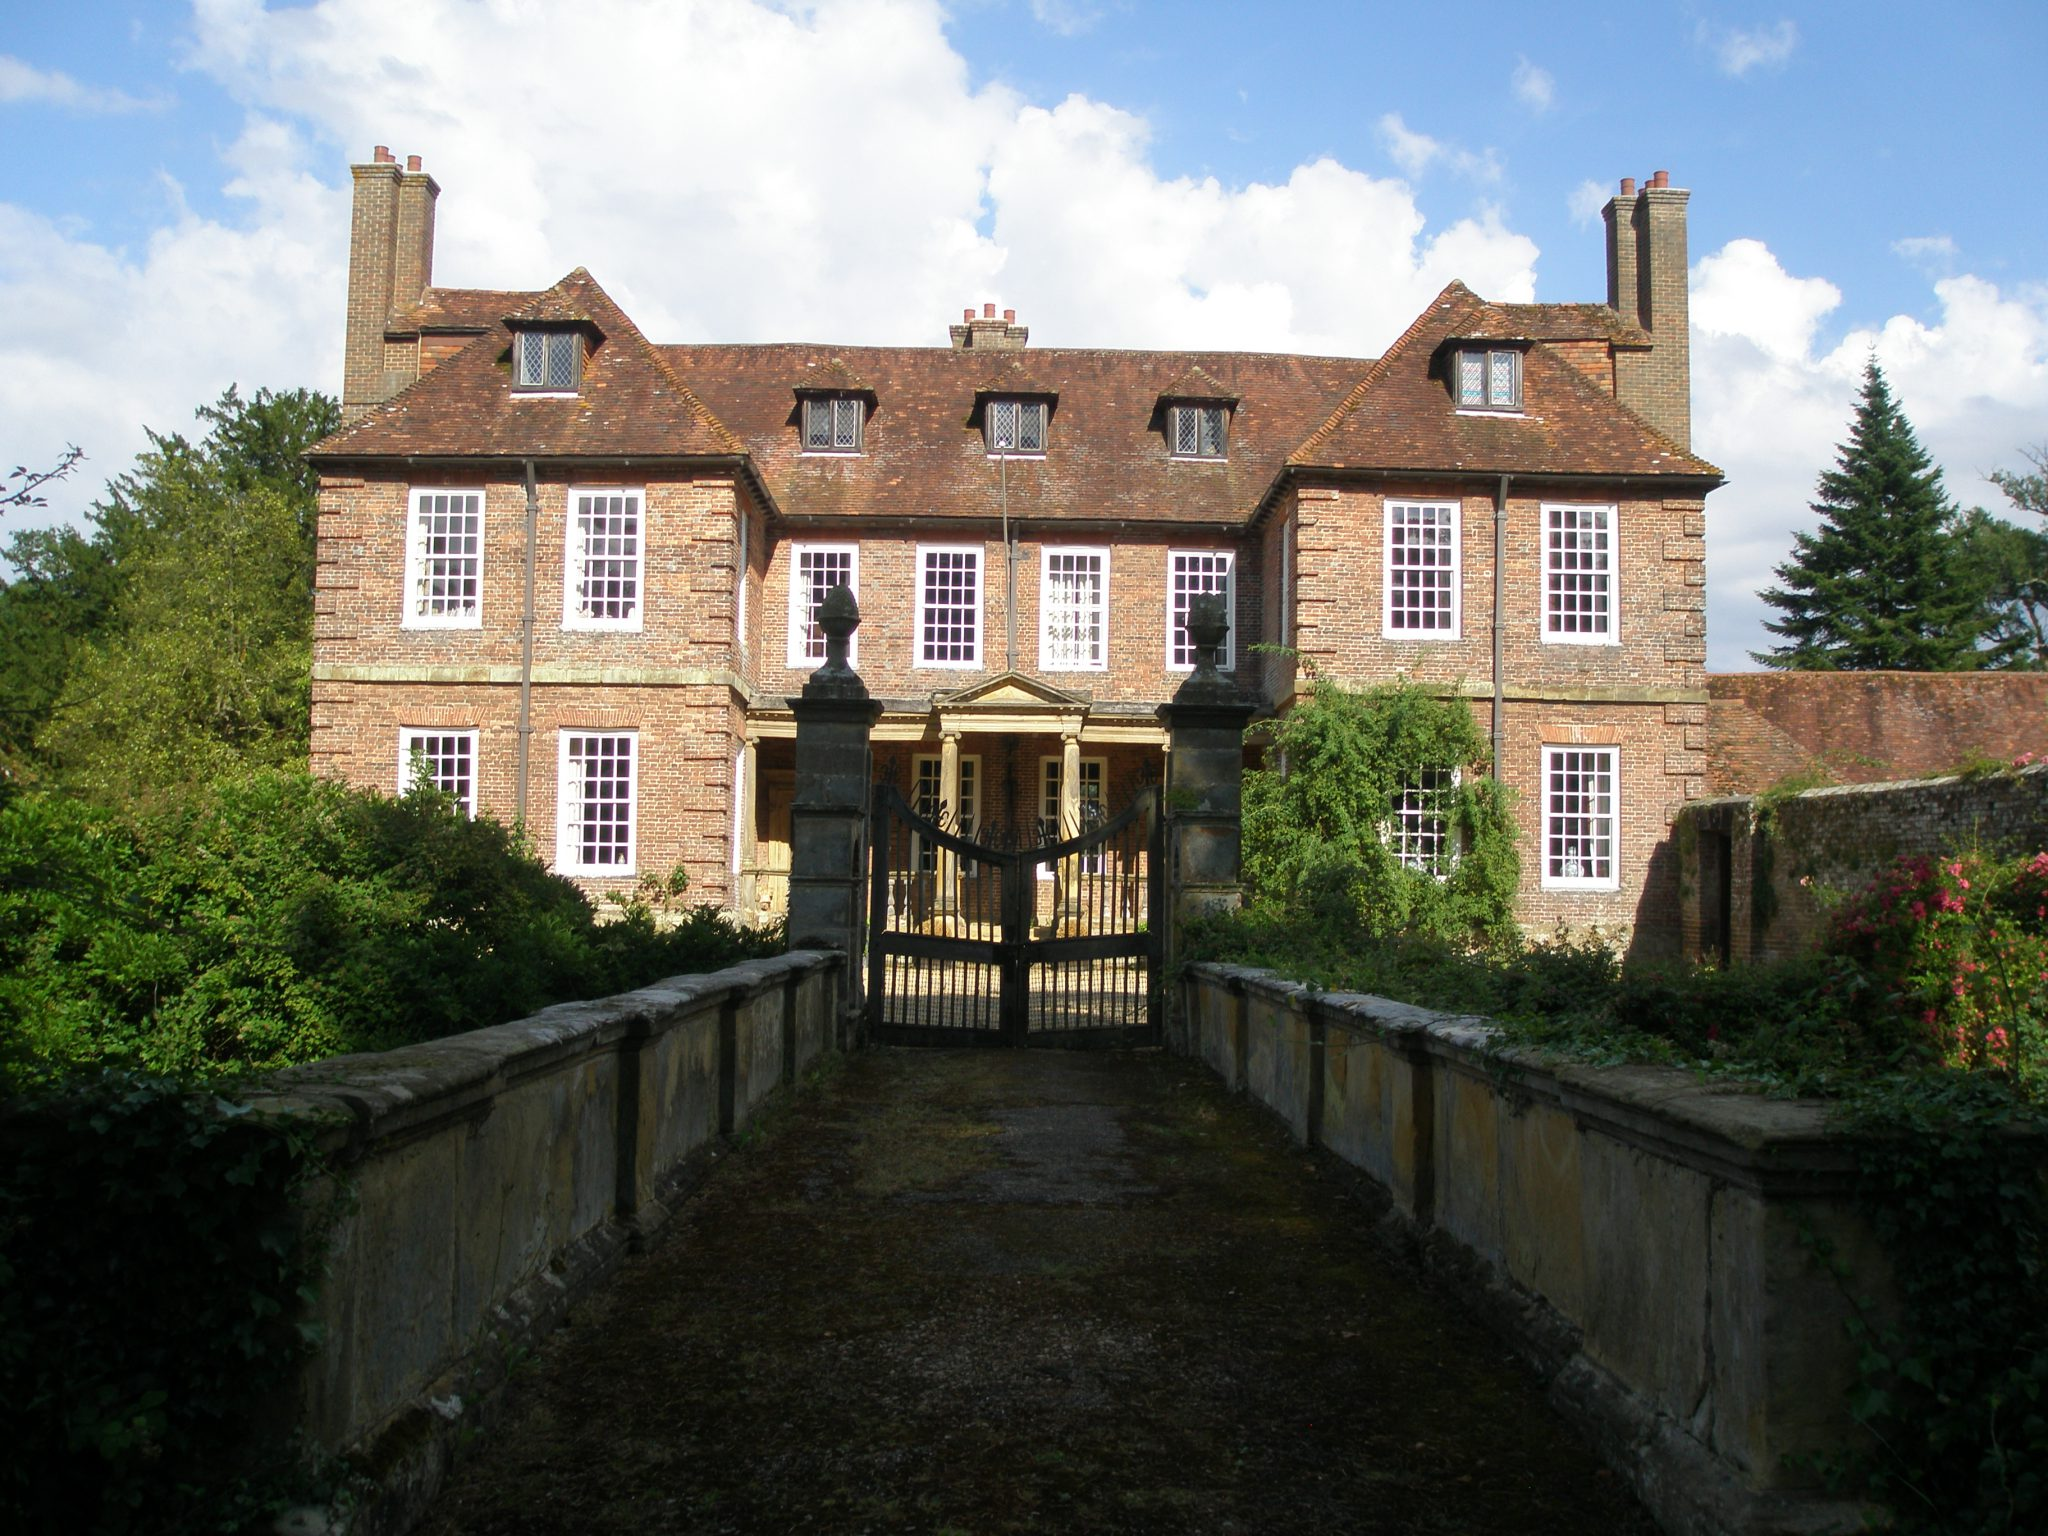 View from the Front Bridge, to the House